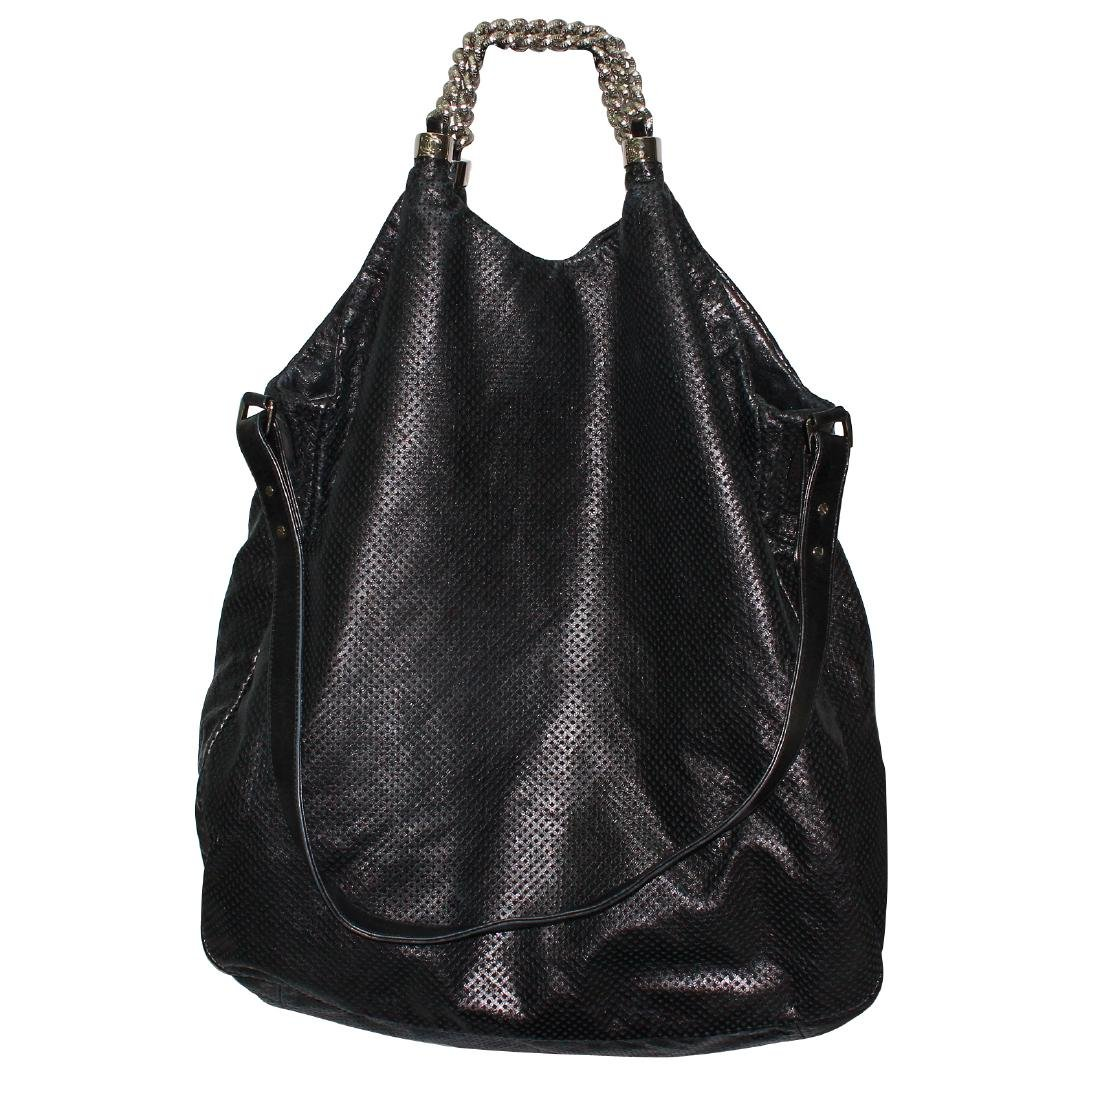 Chanel Rodeo XL Hobo Black Perforated Leather Tote Bag - 2